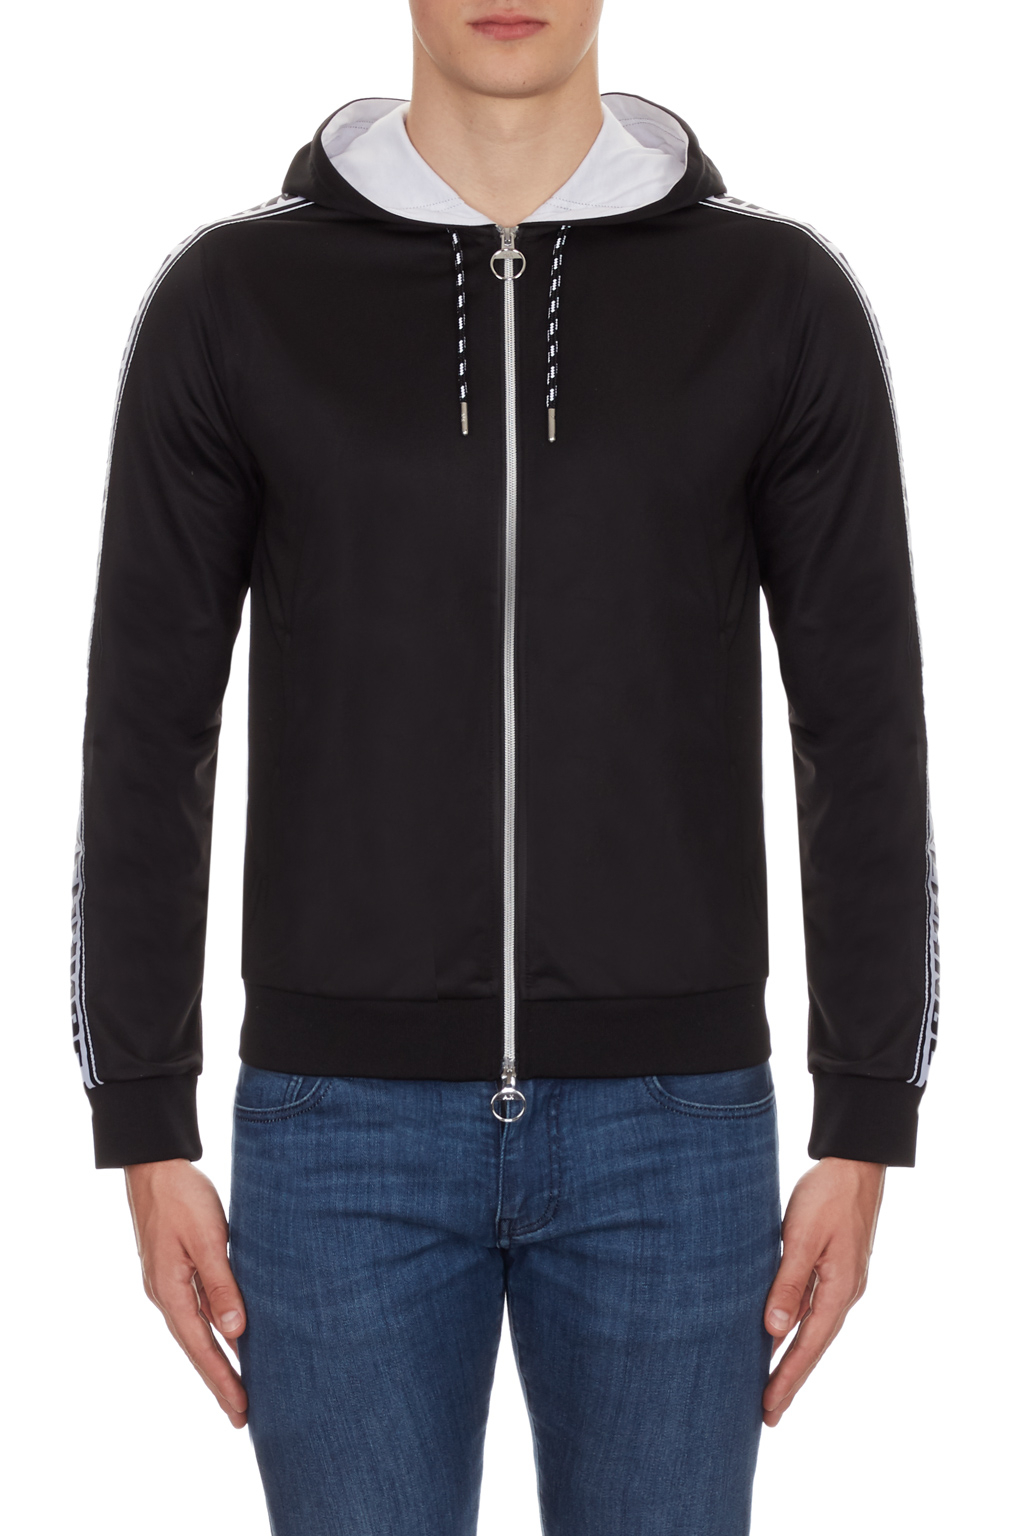 Felpa full zip cappuccio uomo ARMANI EXCHANGE